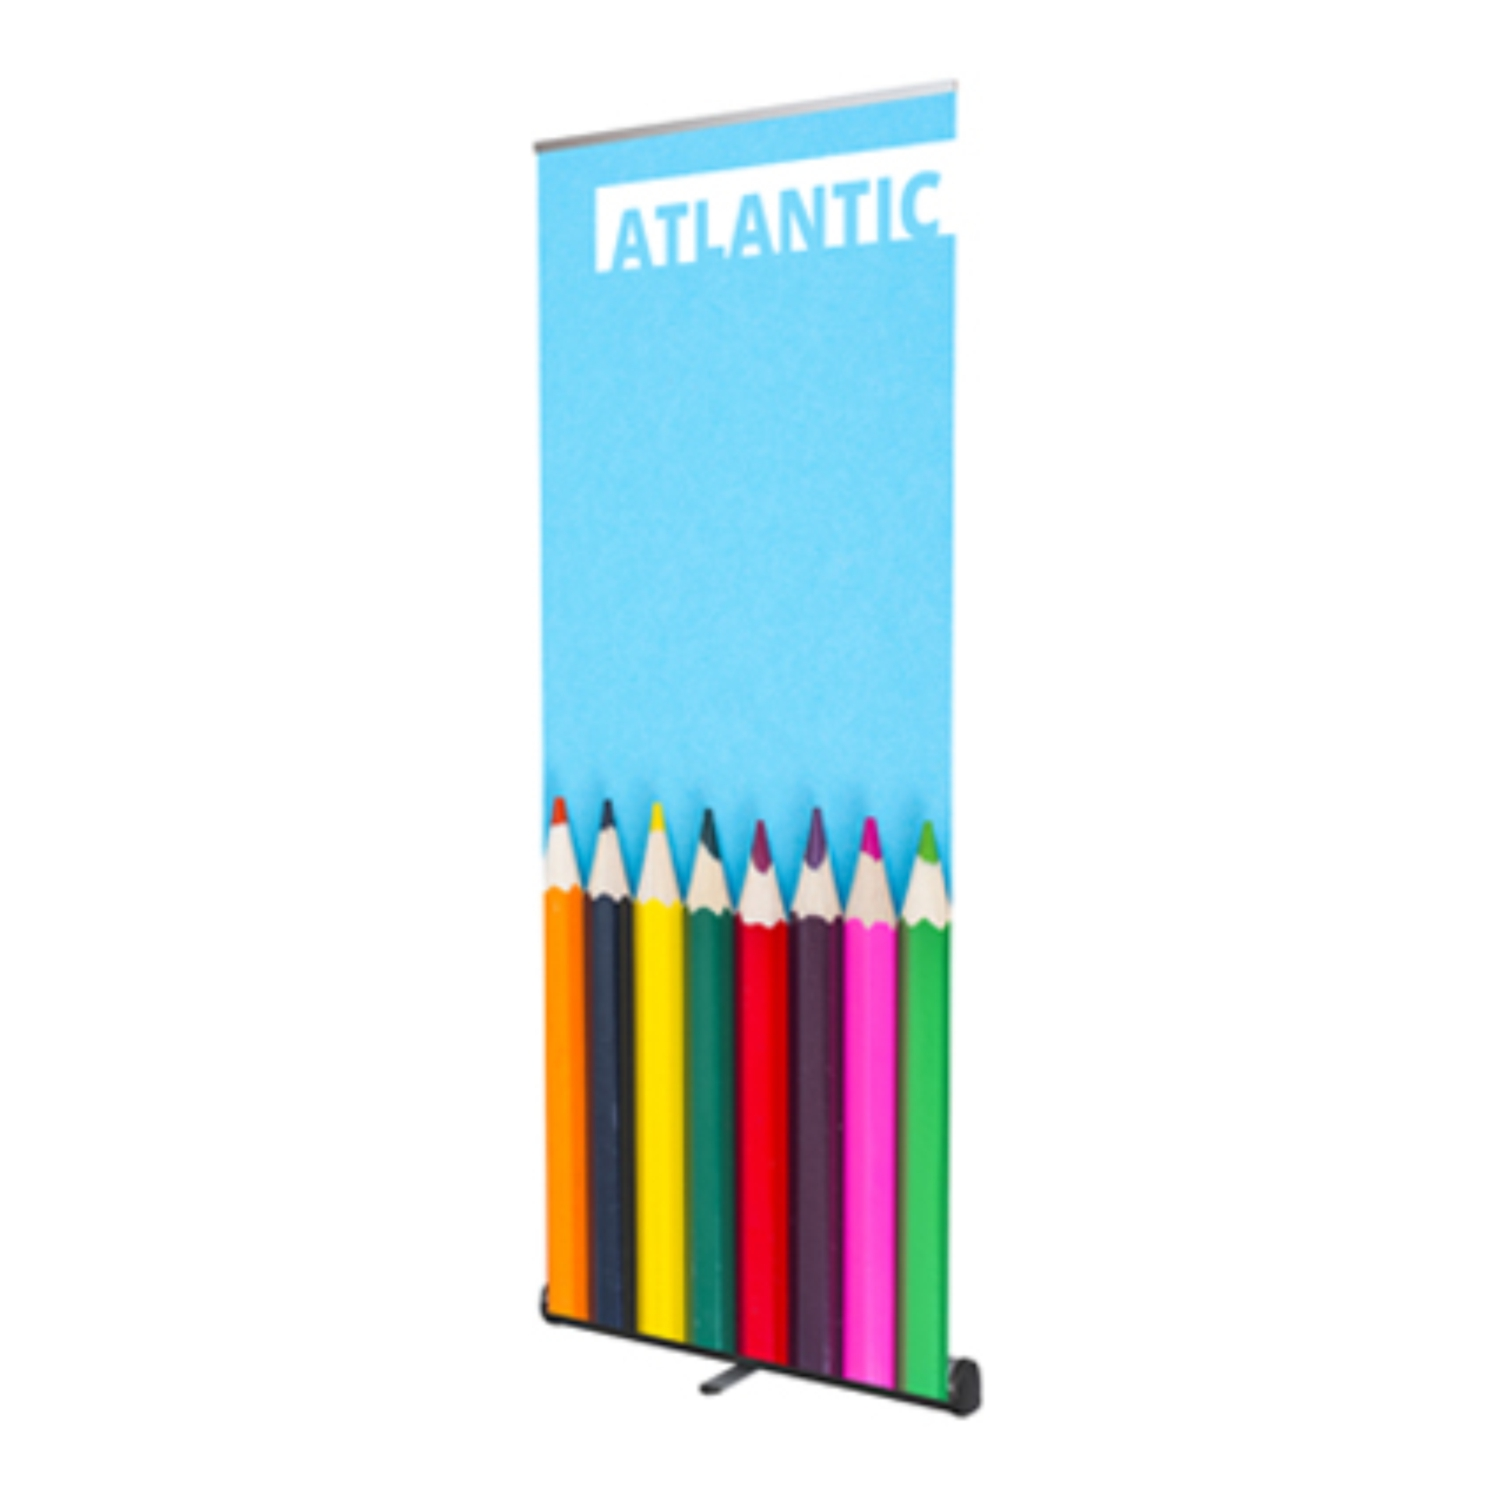 Atlantic Roller Banner Stand